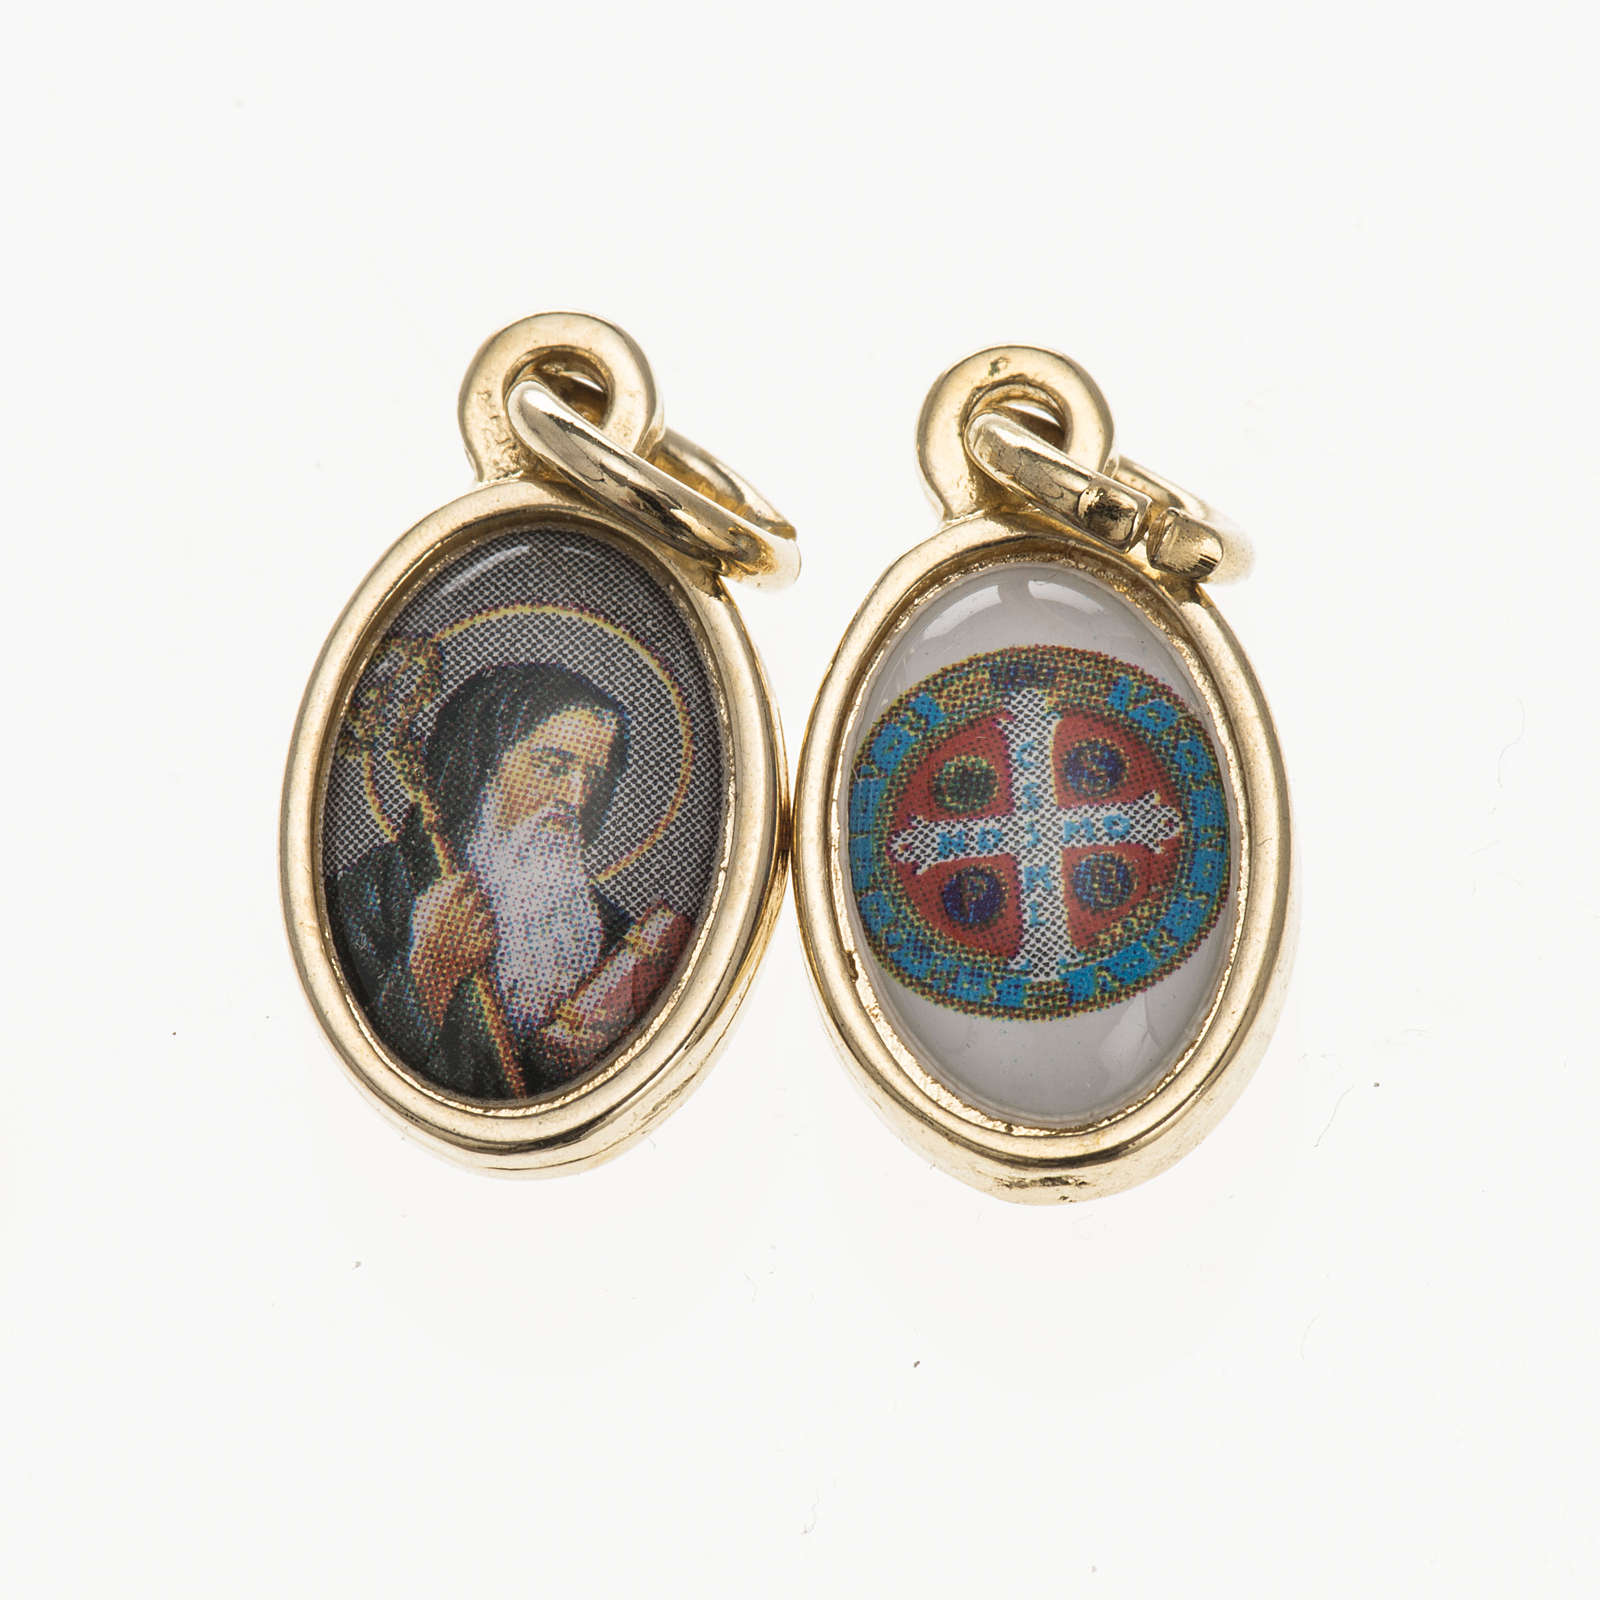 Double medal, Saint Benedict and cross in golden metal and resin 4